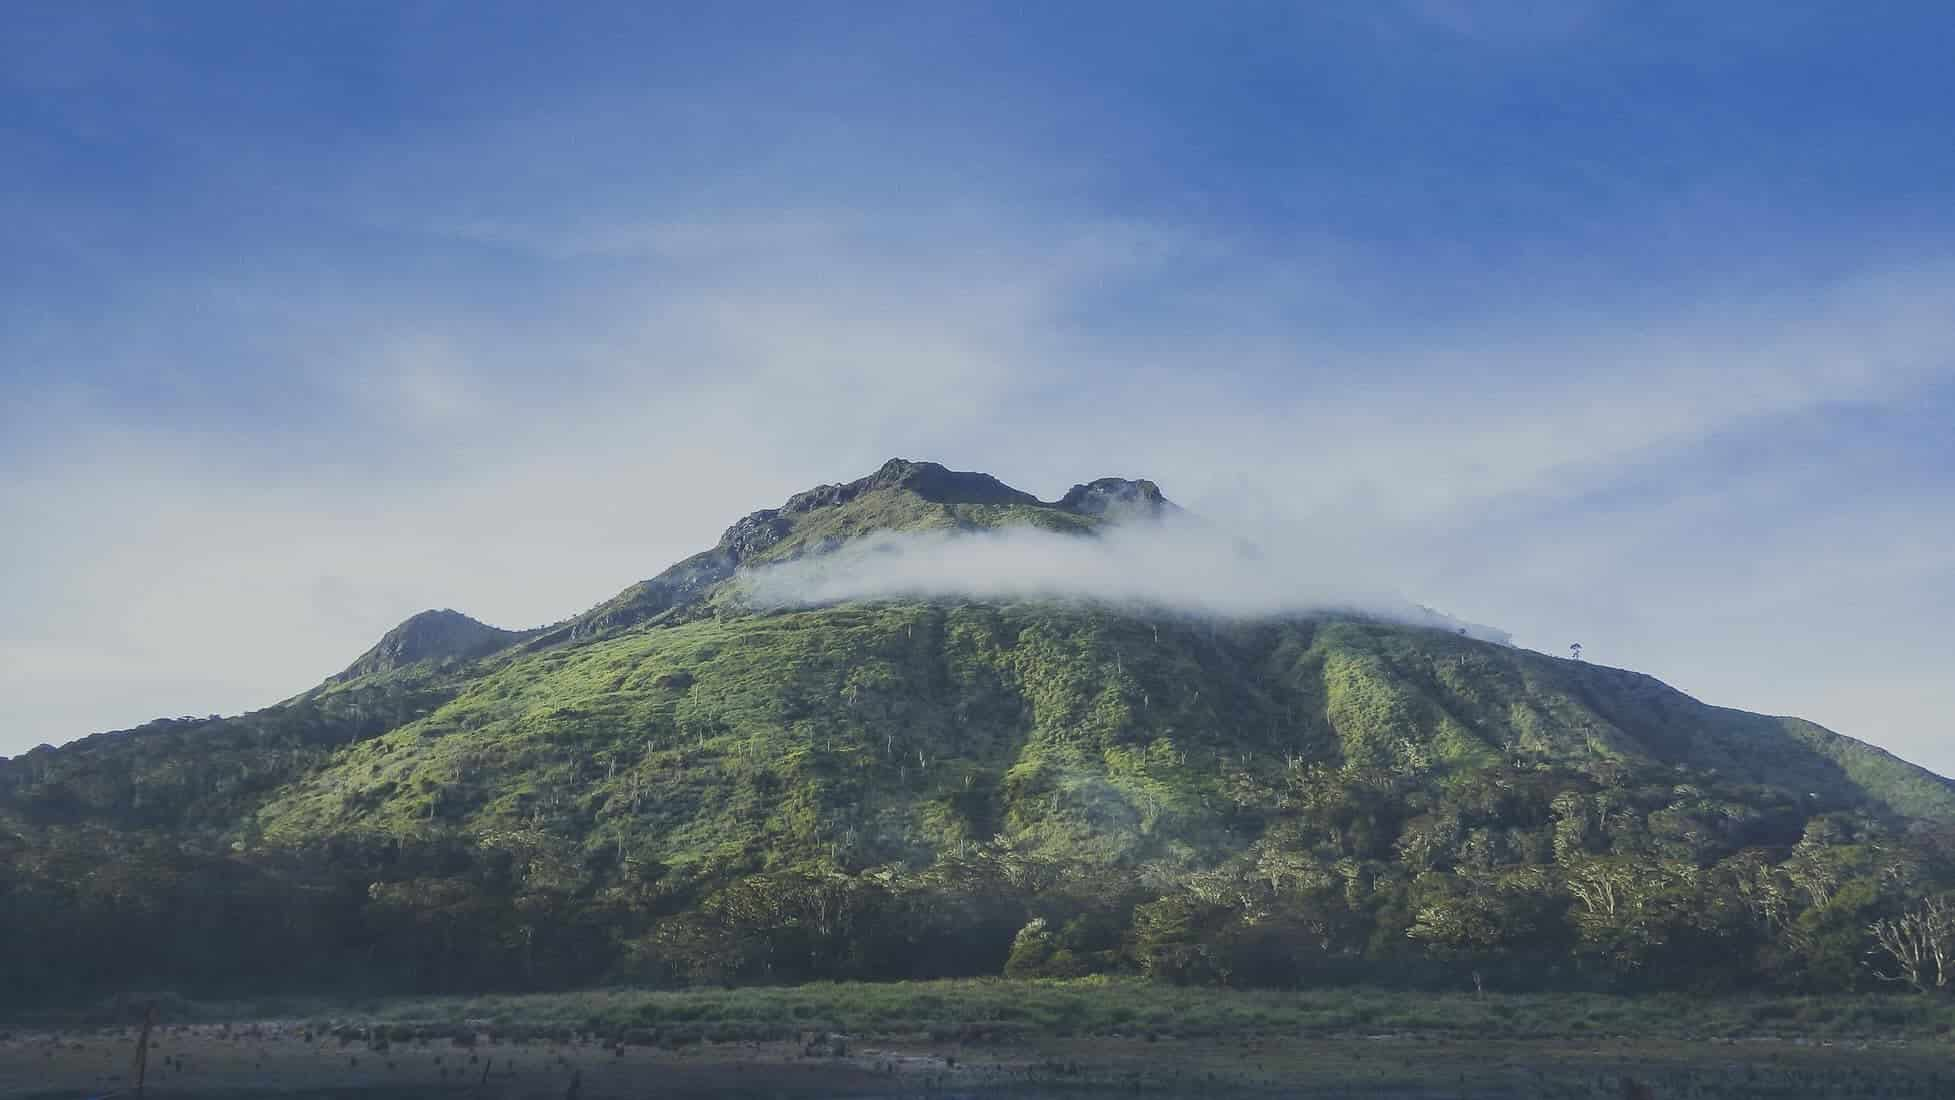 Mount Apo, the philippines. Biggest mountains in asia